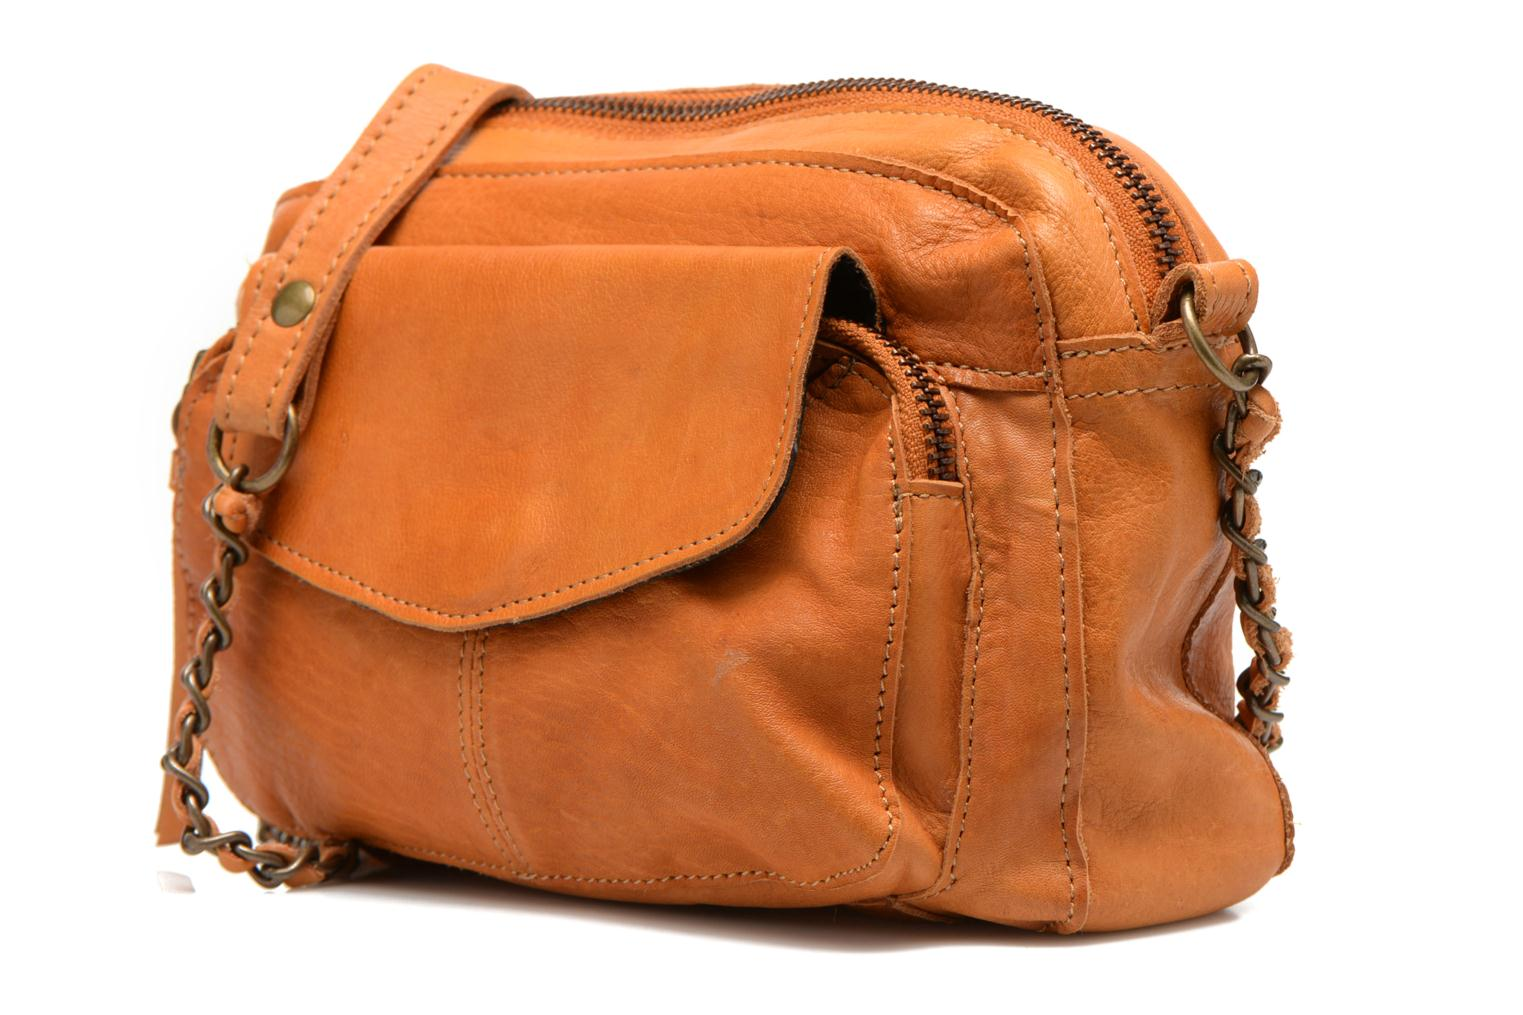 Handtassen Pieces Naina leather Crossover new Bruin model